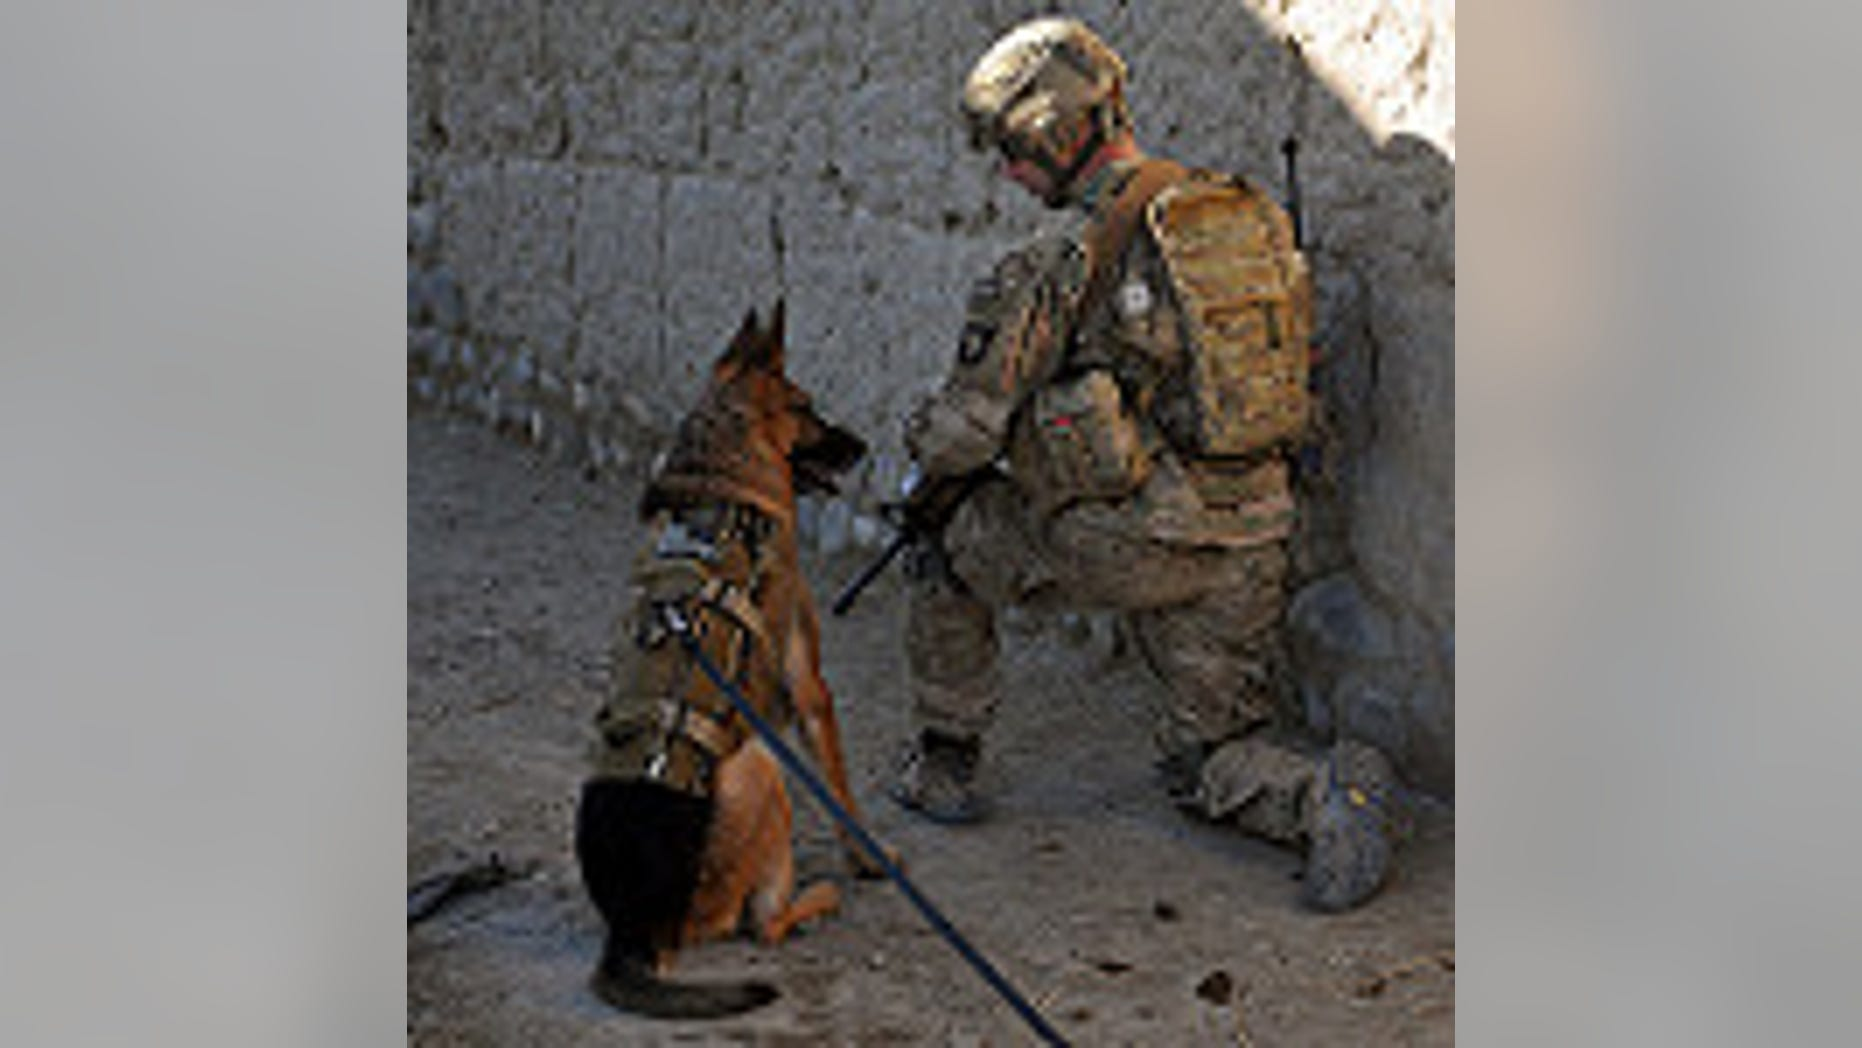 U.S. Army 1st Sgt. Brian Zamiska, 3rd Battalion, 187th Infantry Regiment, 3rd Brigade Combat Team, 101st Airborne Division (Air Assault), pulls security with a U.S. Air Force working dog, Jan. 6, 2013, during a patrol with the Afghan Border Police in Tera Zeyi district, Afghanistan. (U.S. Army photo by Spc. Alex Kirk Amen)